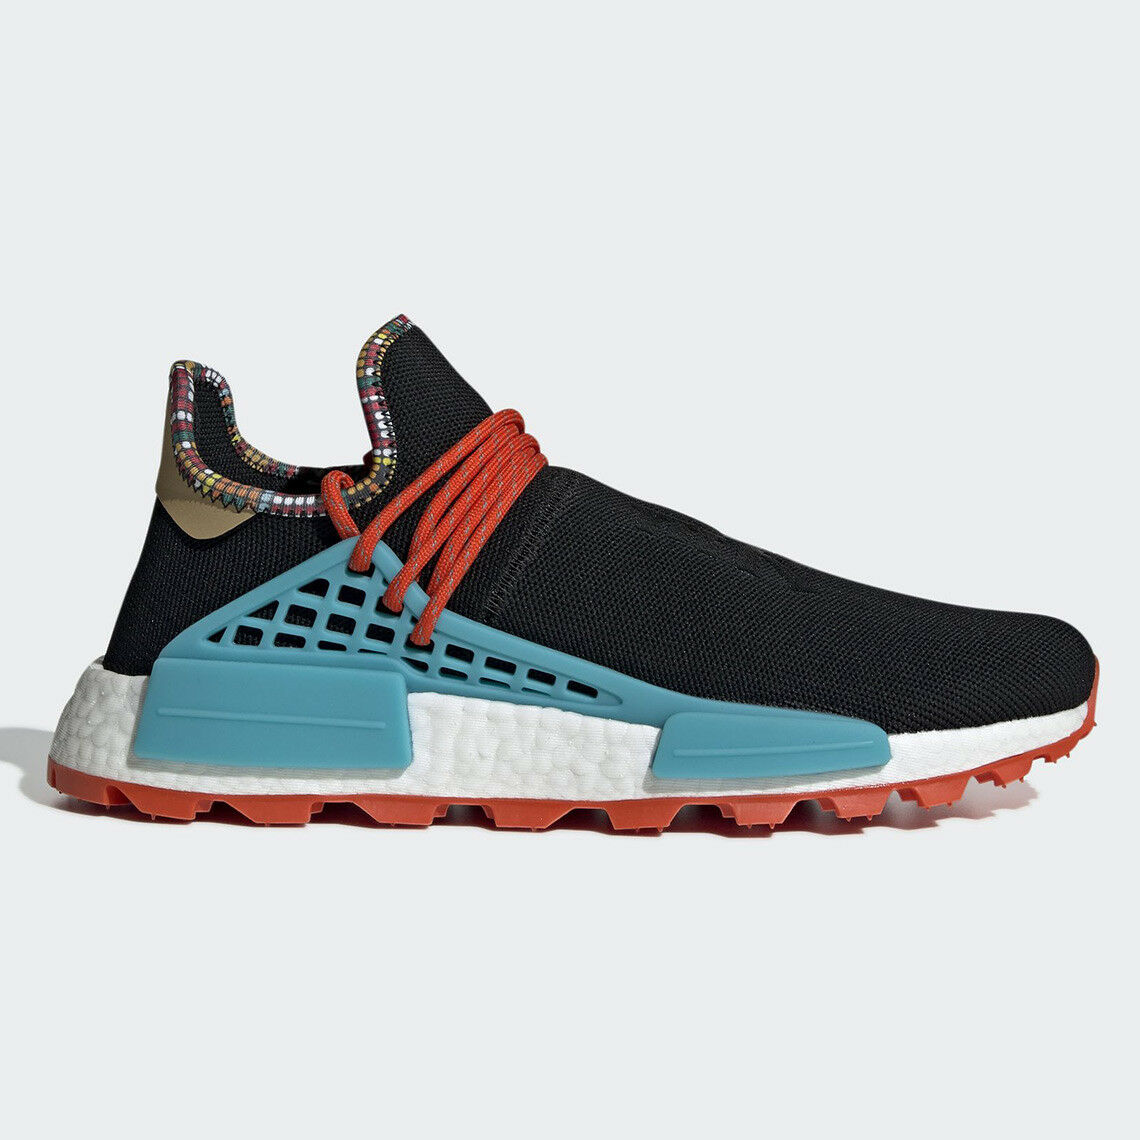 Adidas Pharrell Williams Human Race Nmd Hu Inspiration 8-13 Black bluee EE7582